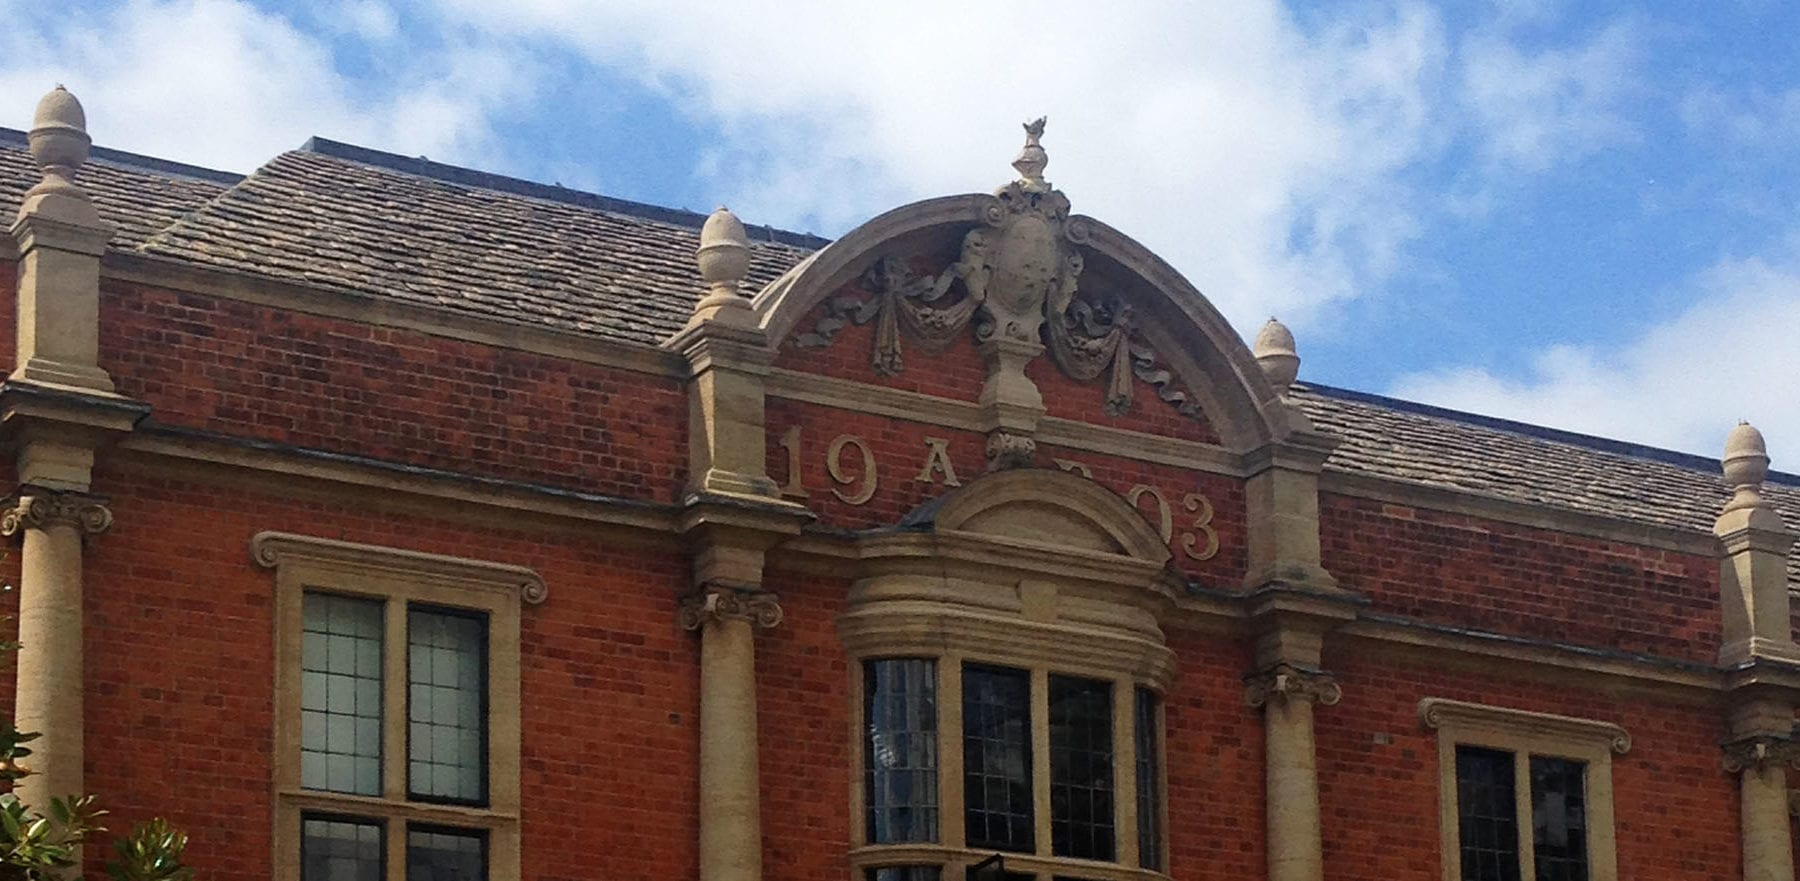 Lifestiles - Natural Stone Roof Tiles - The Stanford, England 3